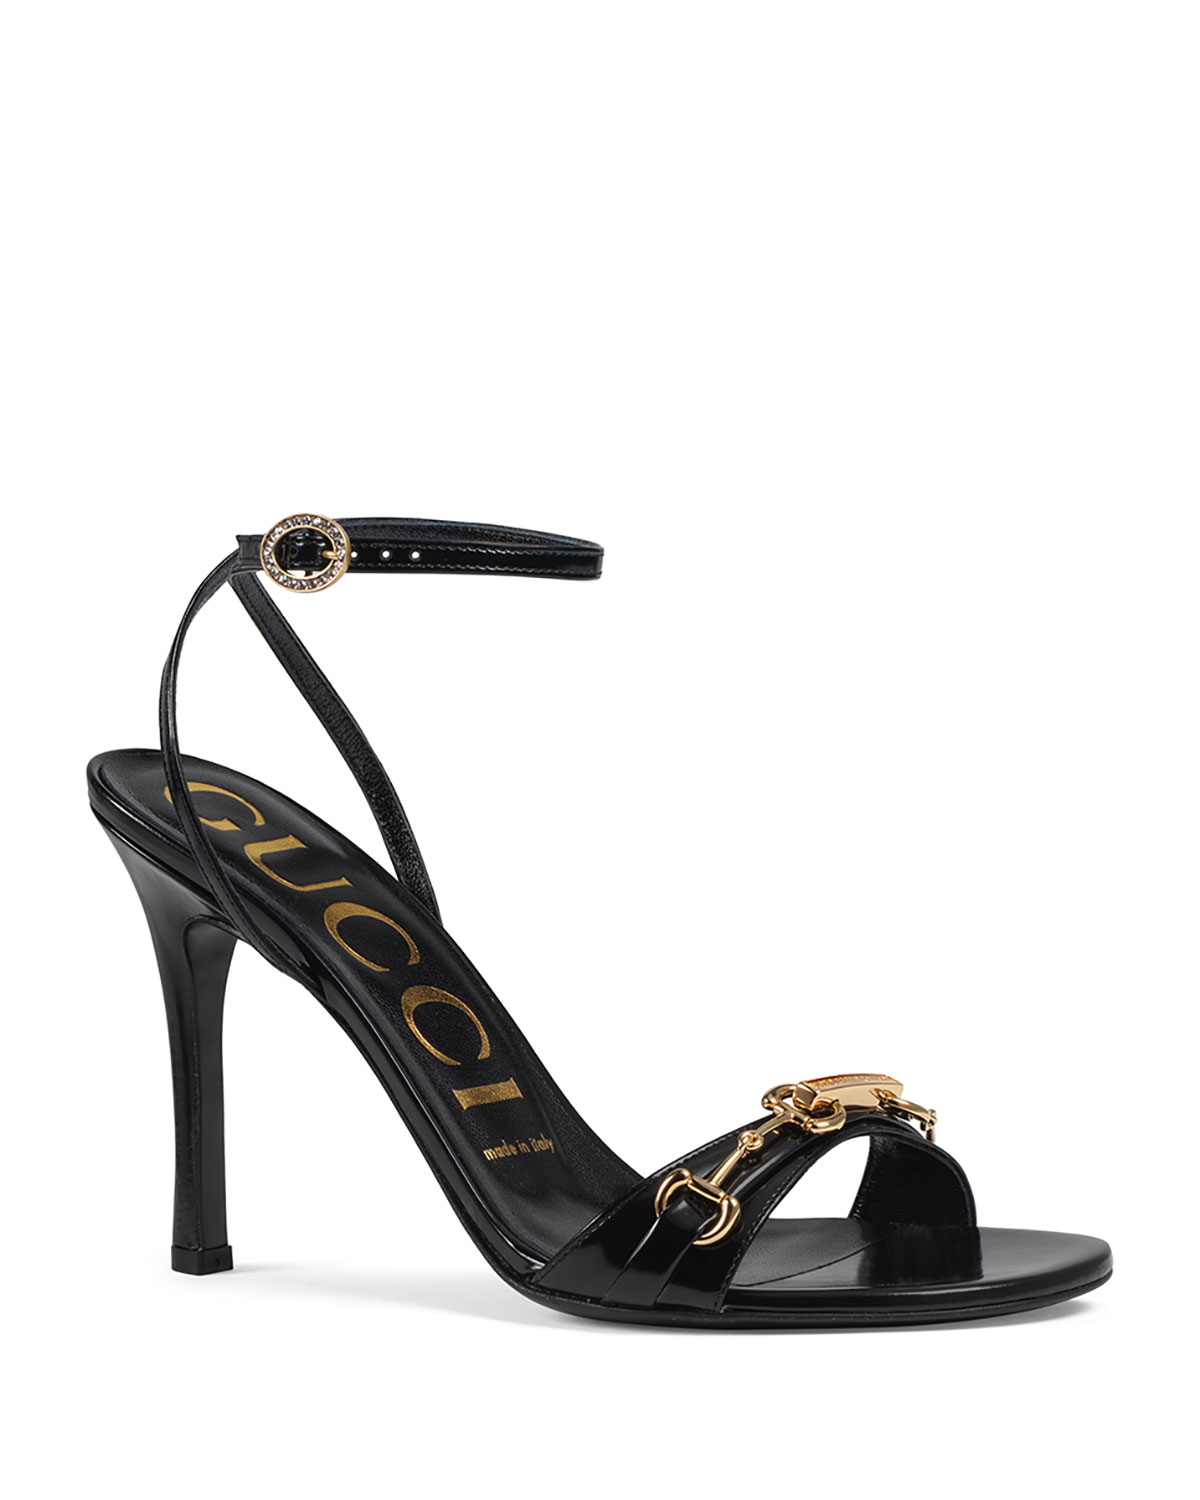 Gucci Moorea Leather Sandals With Horsebit